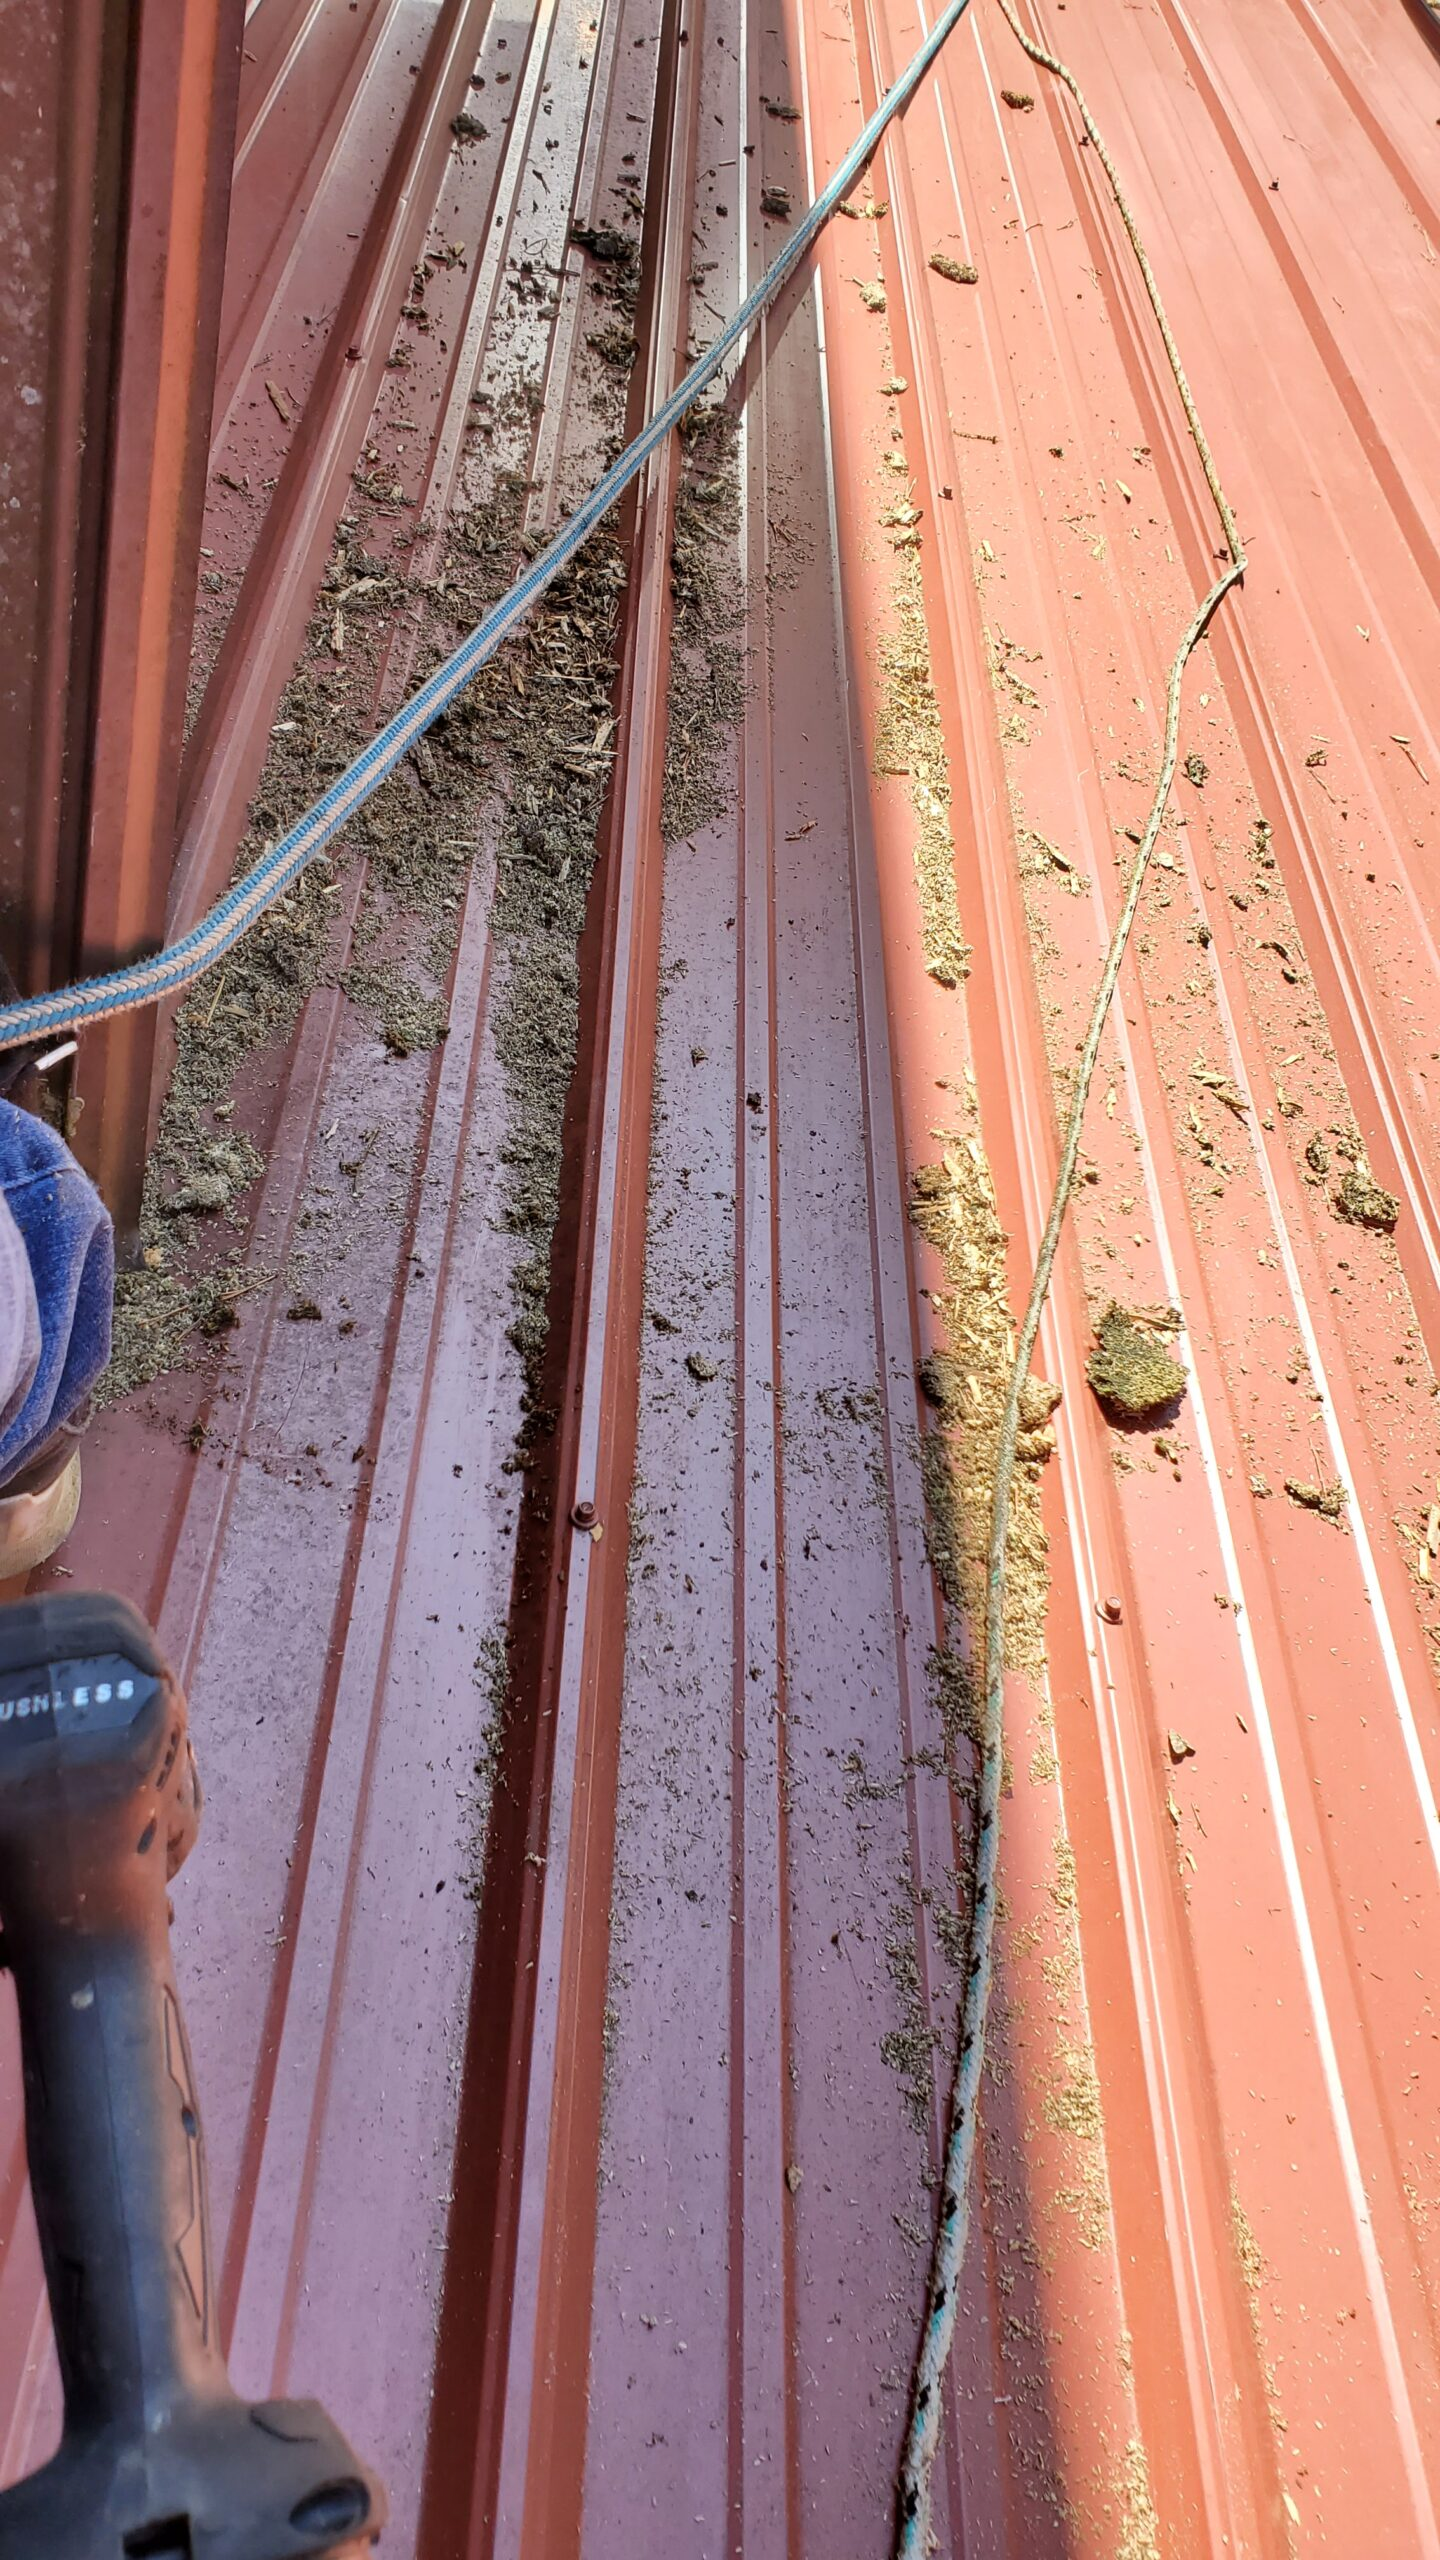 This is a picture of a bunch of sawdust and debris all over a metal roof